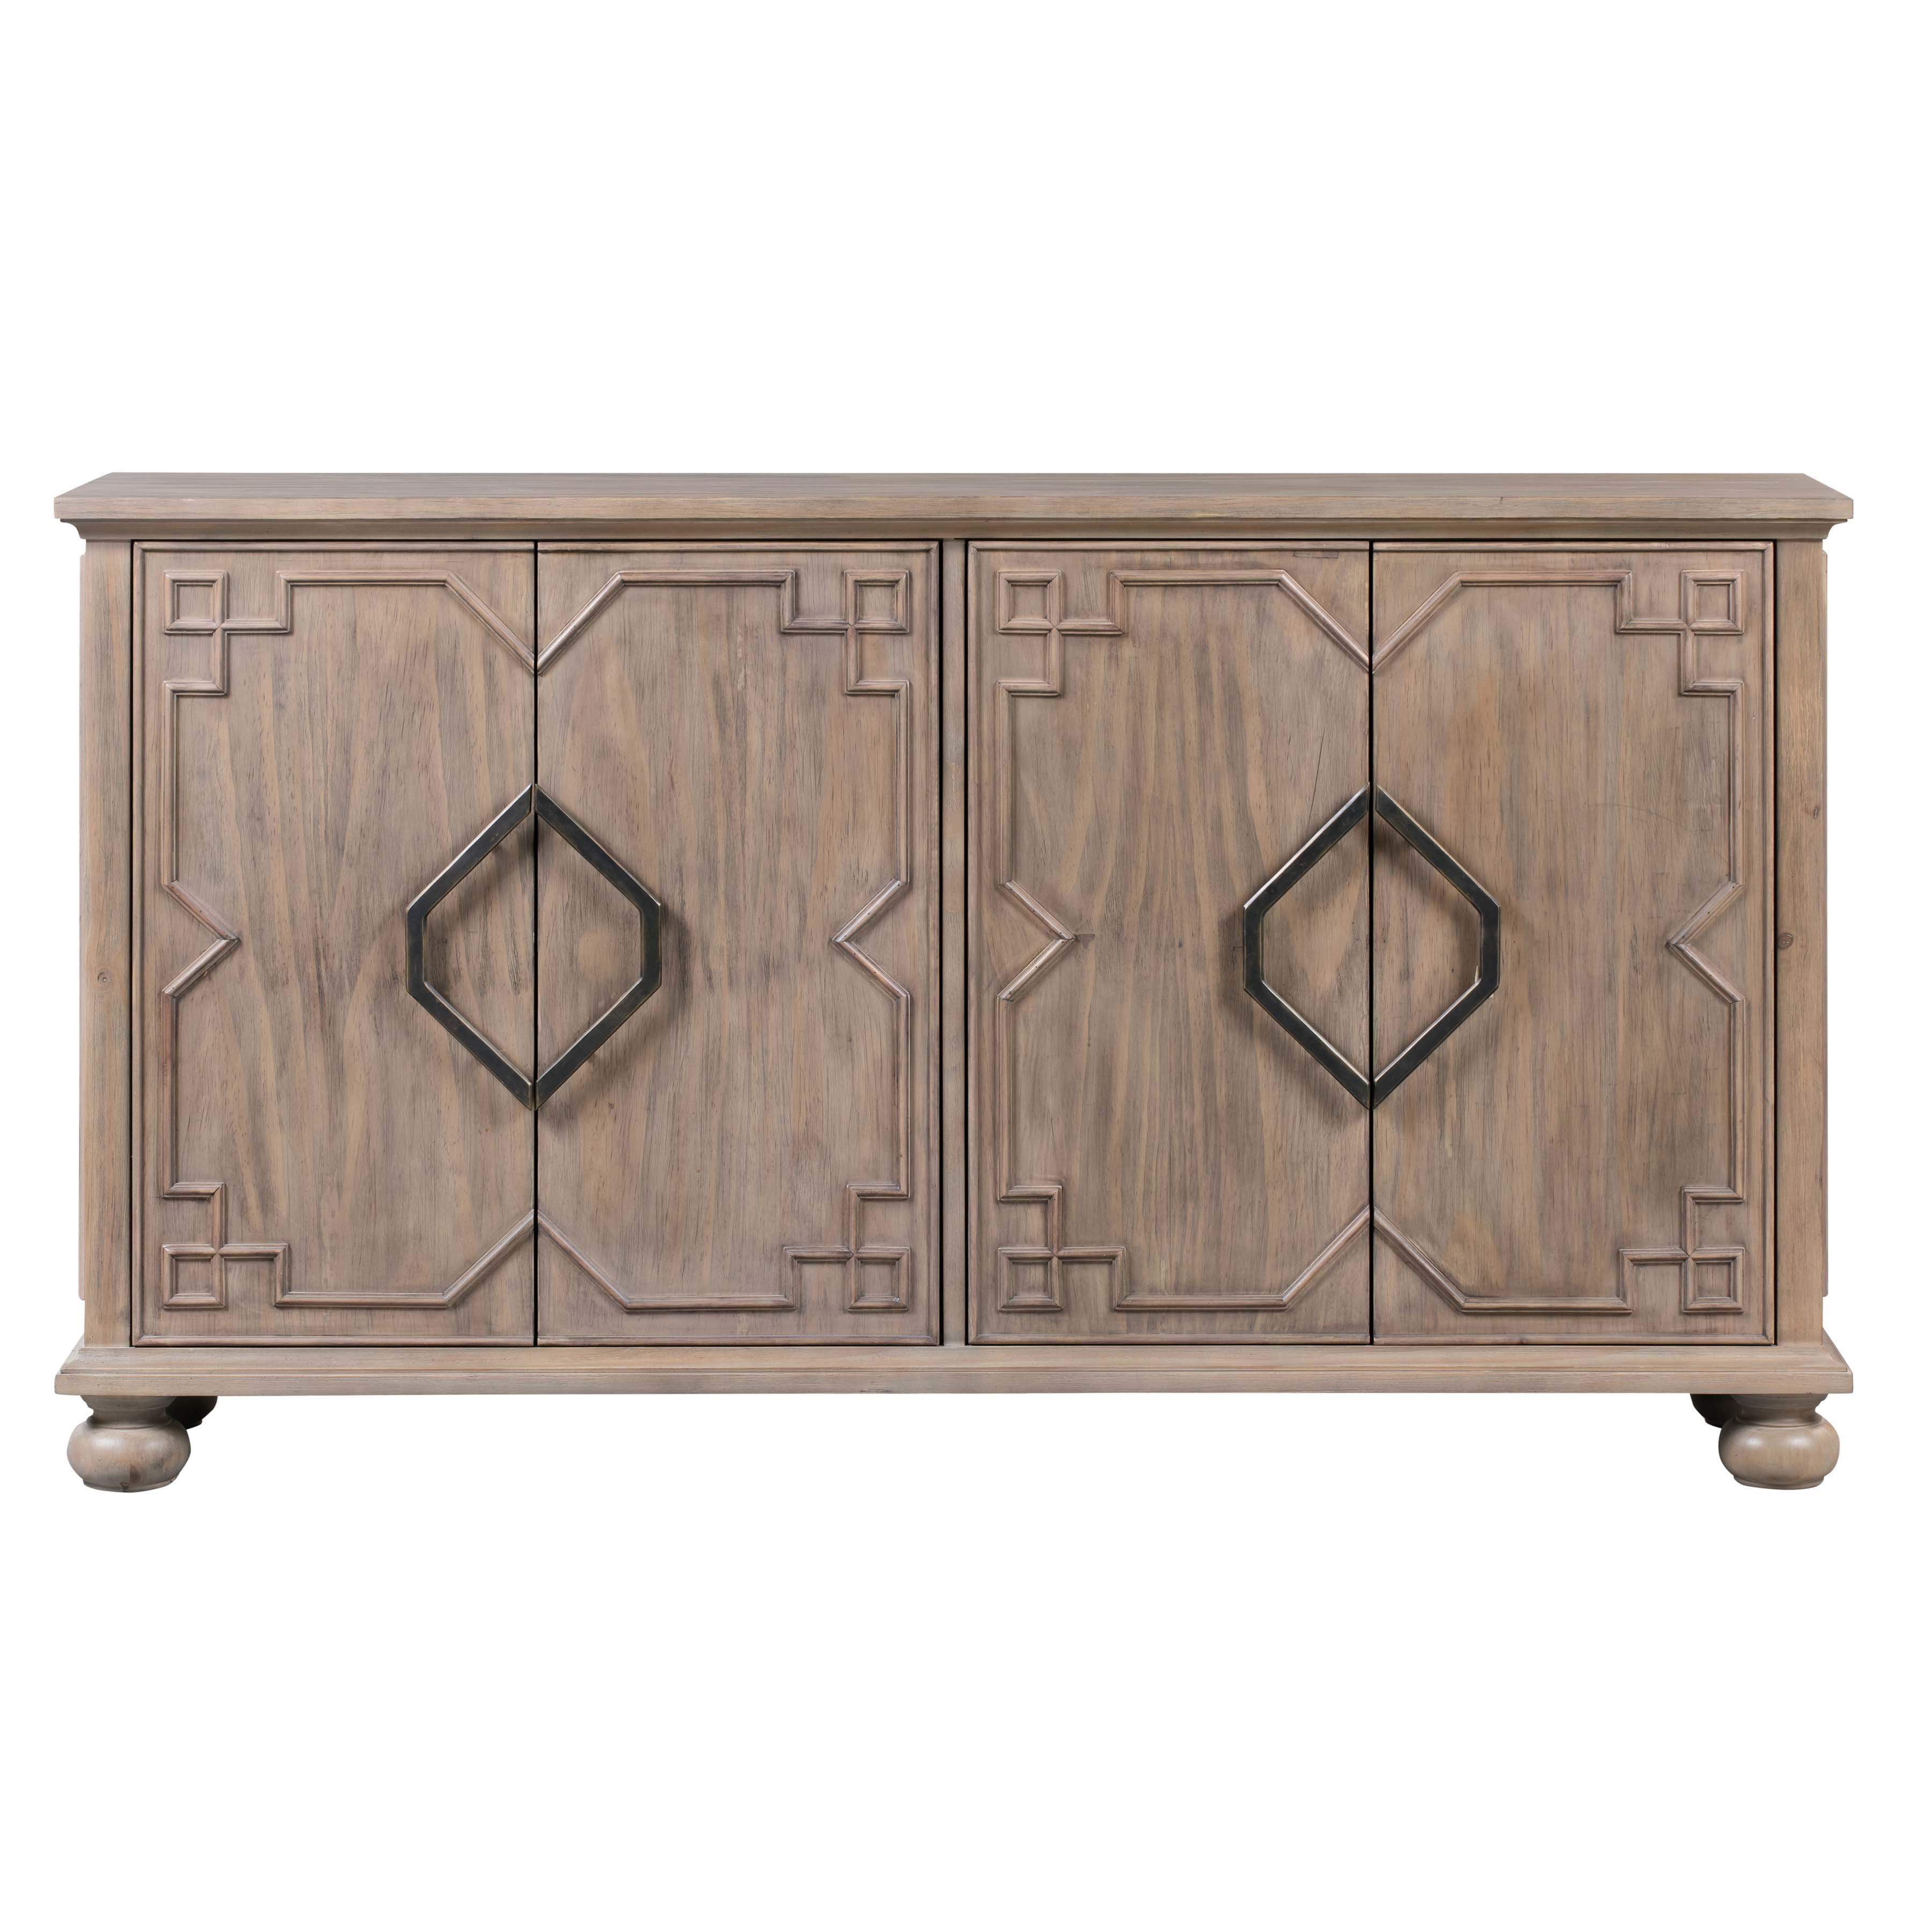 Sideboards & Buffet Tables | Joss & Main With Whitten Sideboards (View 2 of 20)